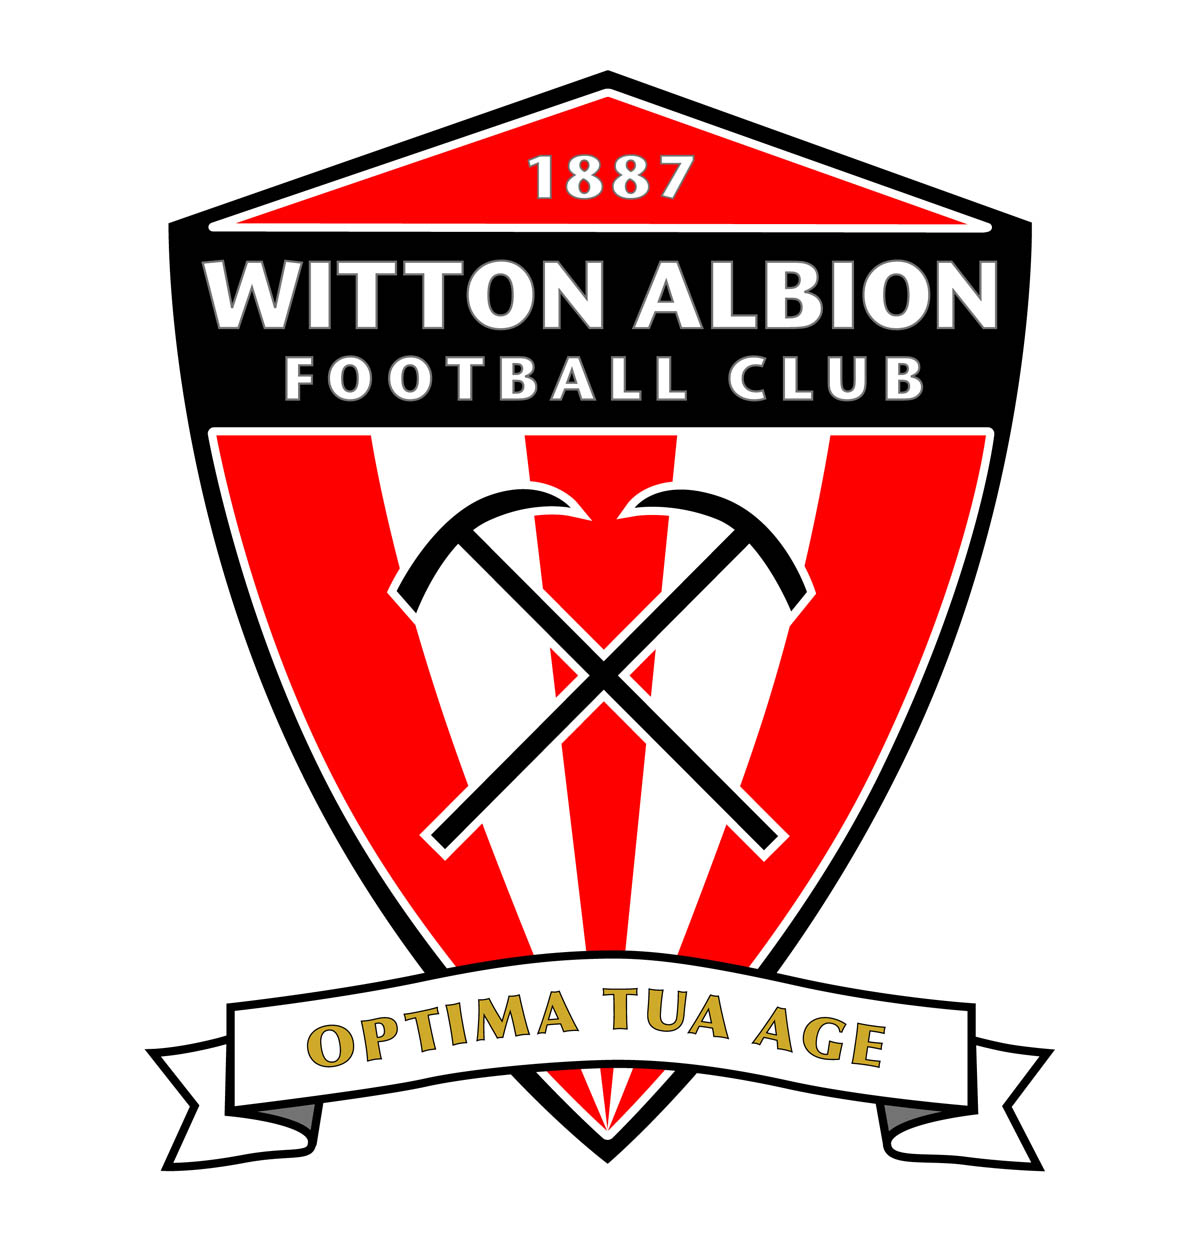 Billy Smart, a central midfielder, has signed for Witton Albion following his departure from Northern Premier League Premier Division rivals Marine